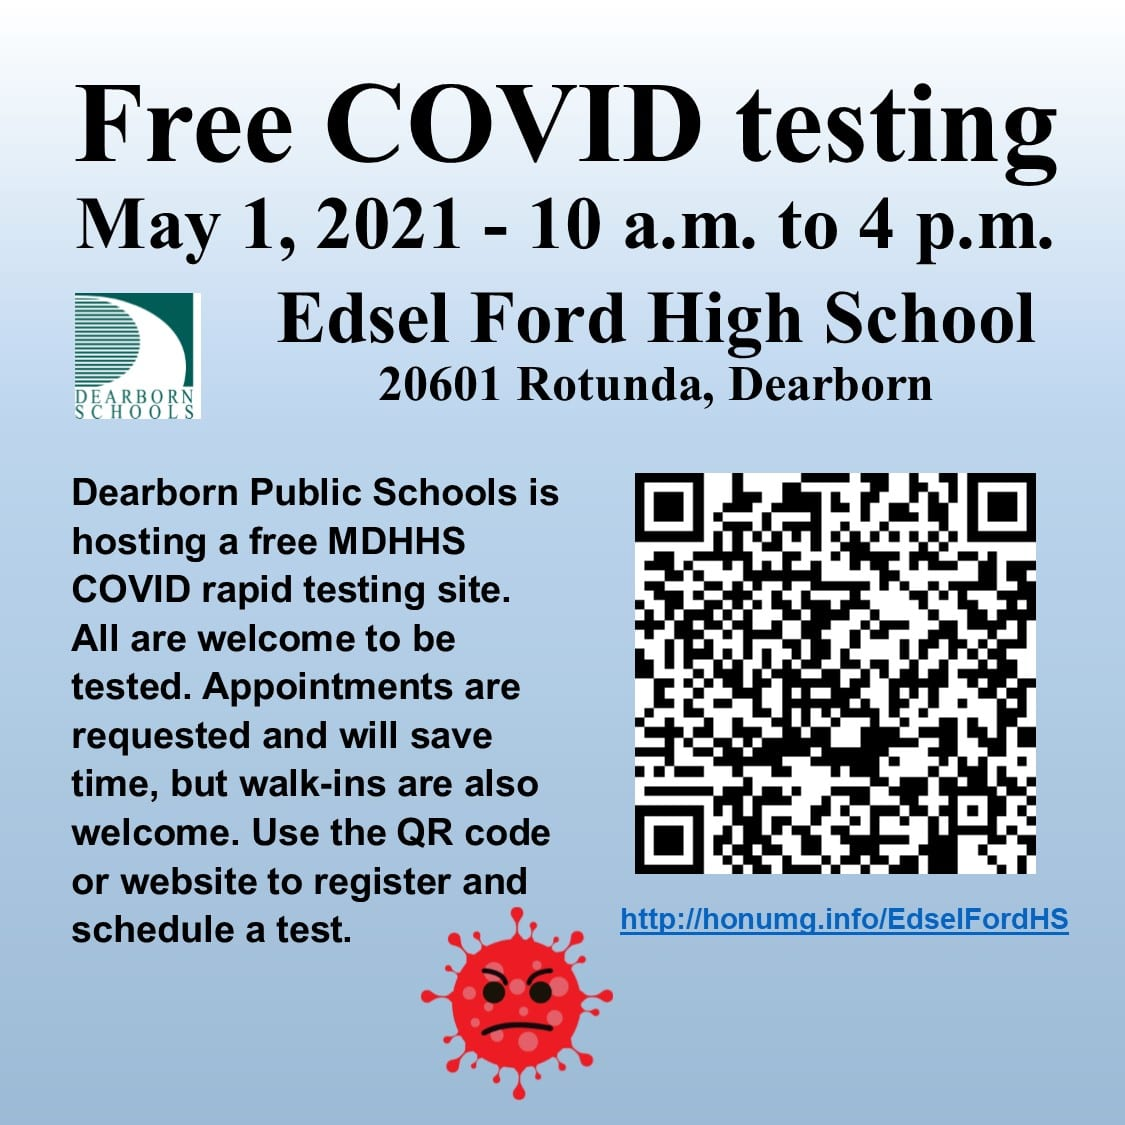 Free COVID testing. May 1, 2021 - 10 a.m. to 4 p.m., Edsel Ford High School, 20601 Rotunda, Dearborn. Dearborn Public Schools is hosting a free MDHHS COVID rapid testing site. All are welcome to be tested. Appointments are requrested and will sve time, but walk-ins are also welcome. Use the QR code or website to register and schedule a test. http://honumg.info/EdselFordHS